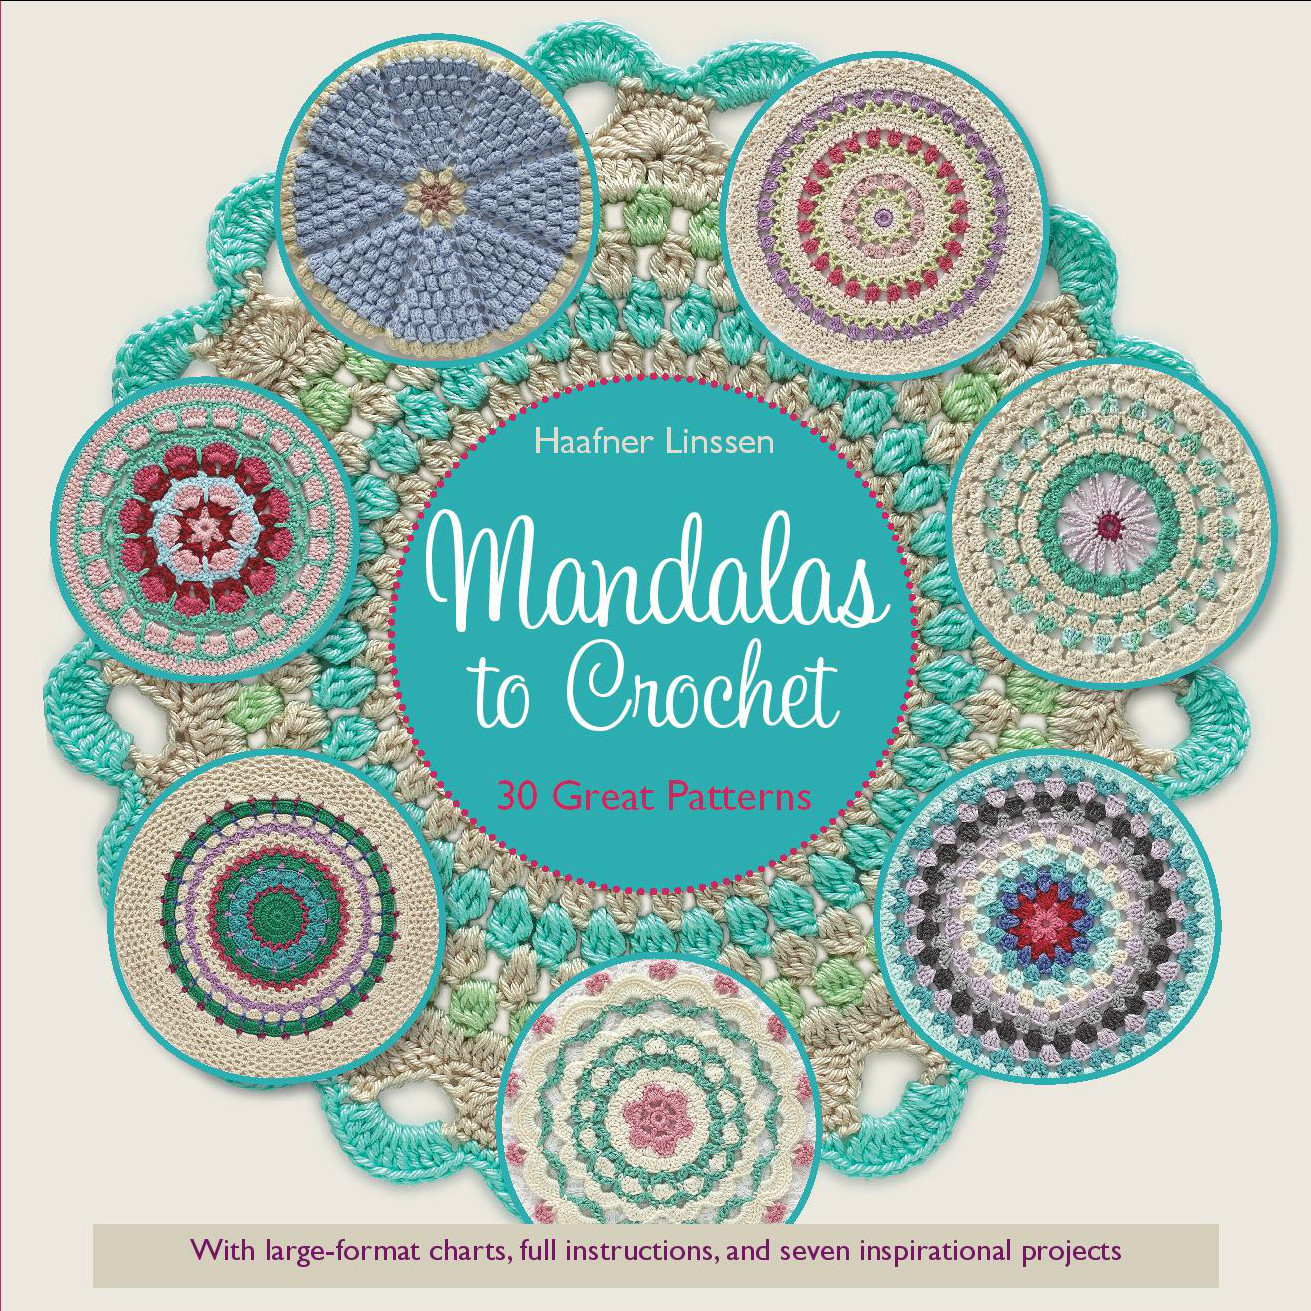 Crochet Mandalas Unique byhaafner Crochet My Book Mandalas to Crochet Of Incredible 41 Pics Crochet Mandalas